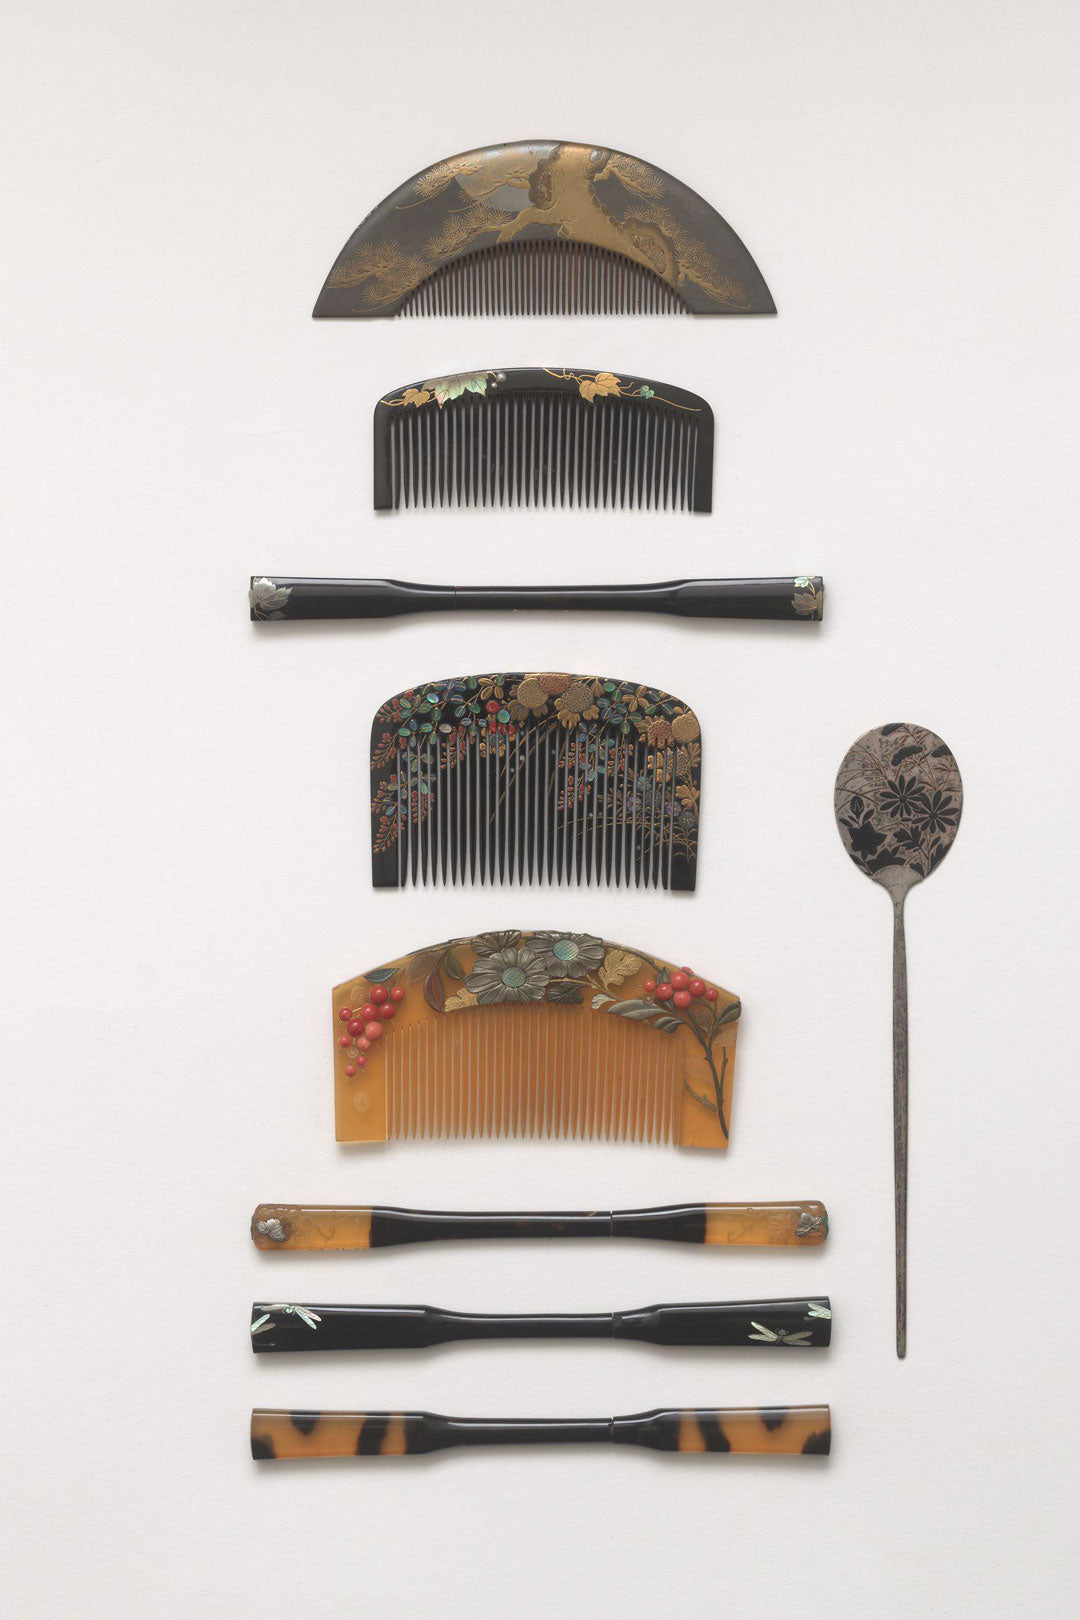 Assortment of Japanese bridal combs made from tortoiseshell and wood